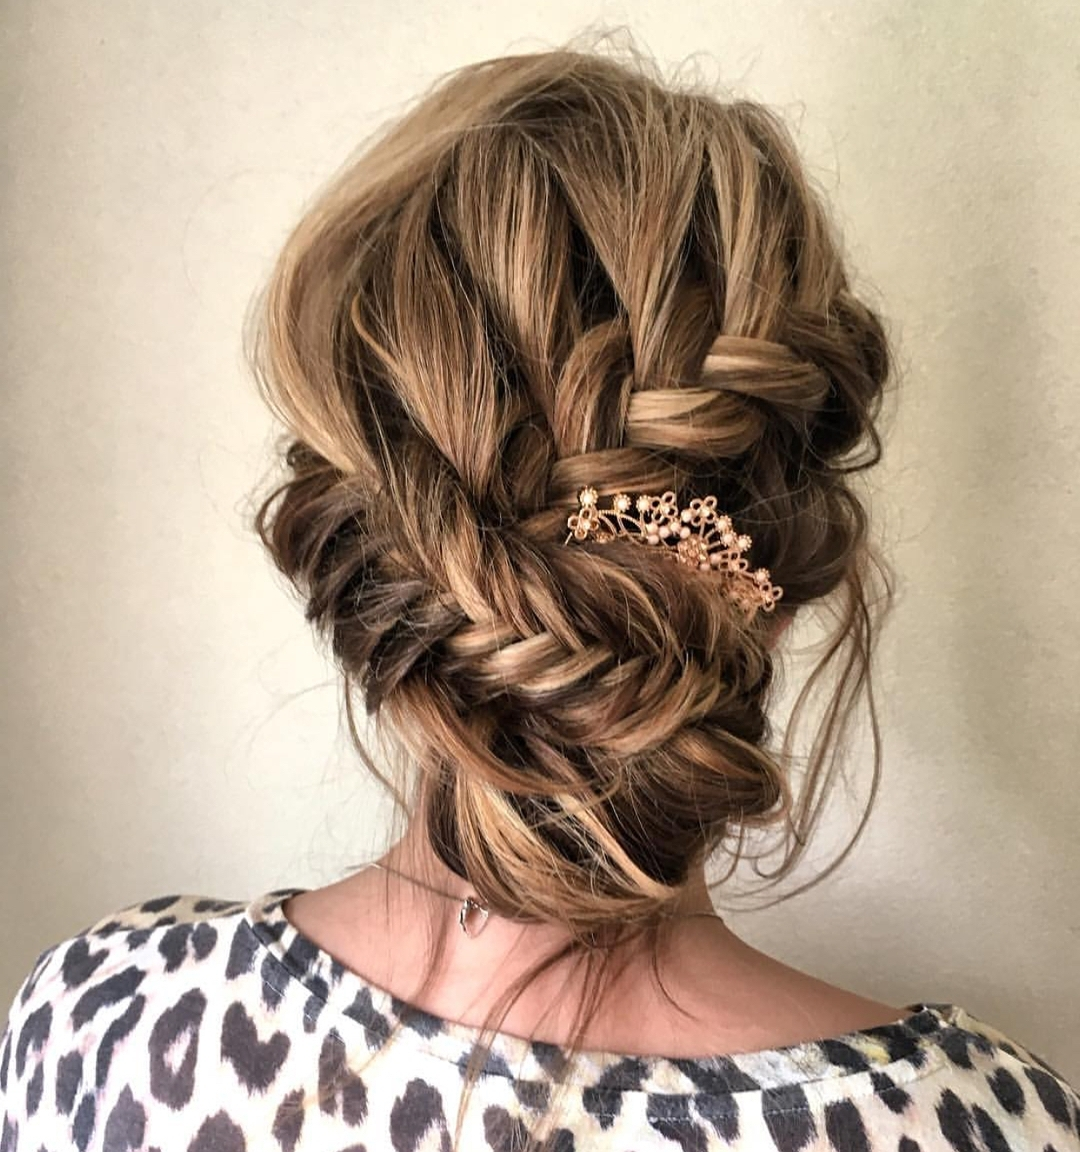 10 Updos For Medium Length Hair From Top Salon Stylists, 2018 Prom Updo Inside Casual Updos For Medium Length Hair (View 2 of 15)